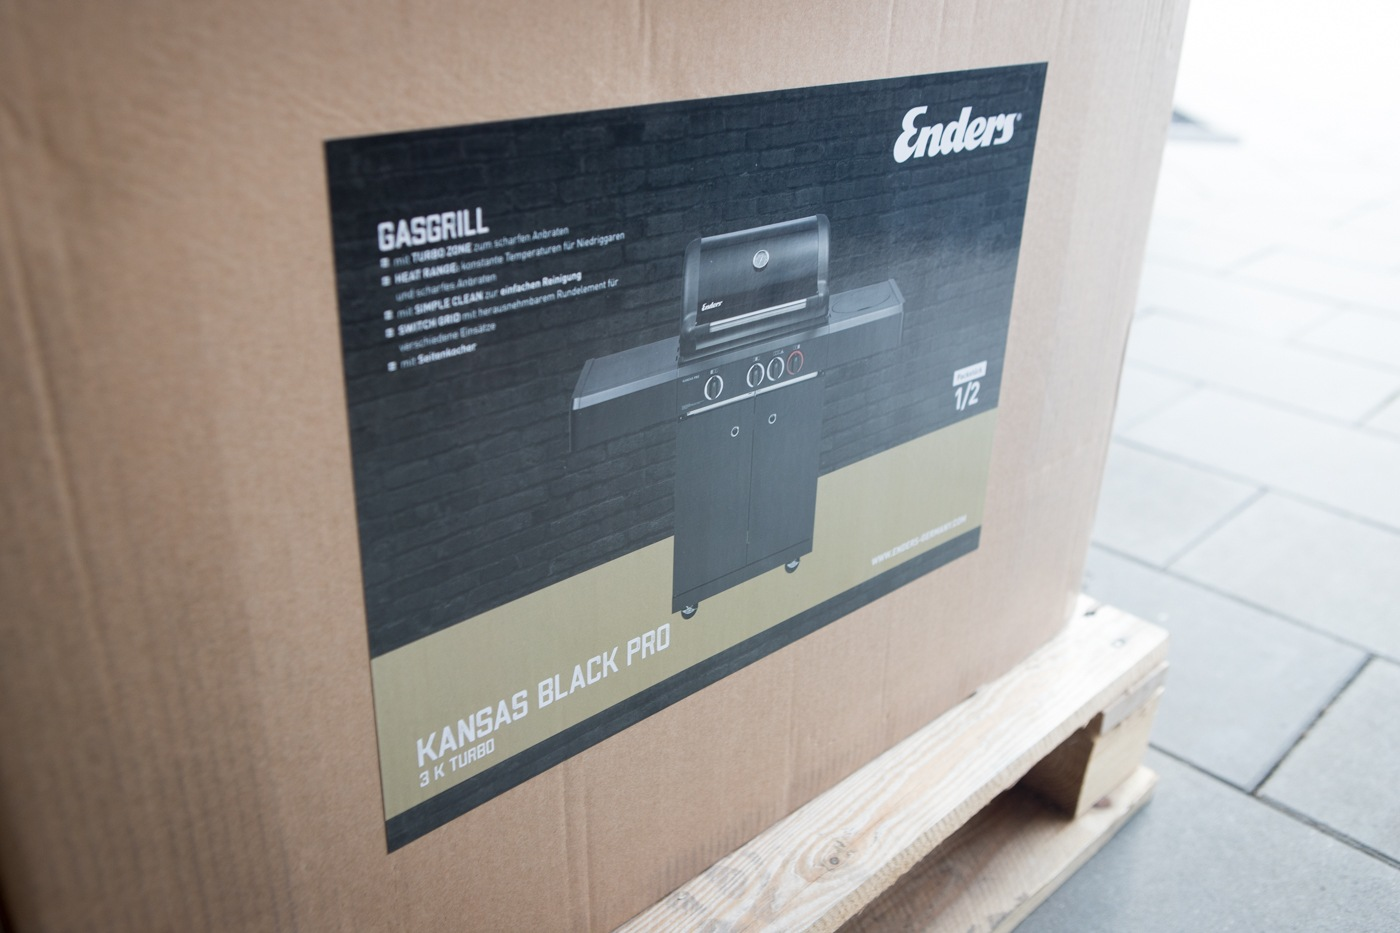 Enders Gasgrill Kansas Black Pro 3 K Turbo : Testbericht enders kansas gasgrill black pro 3 k turbo vorstellung